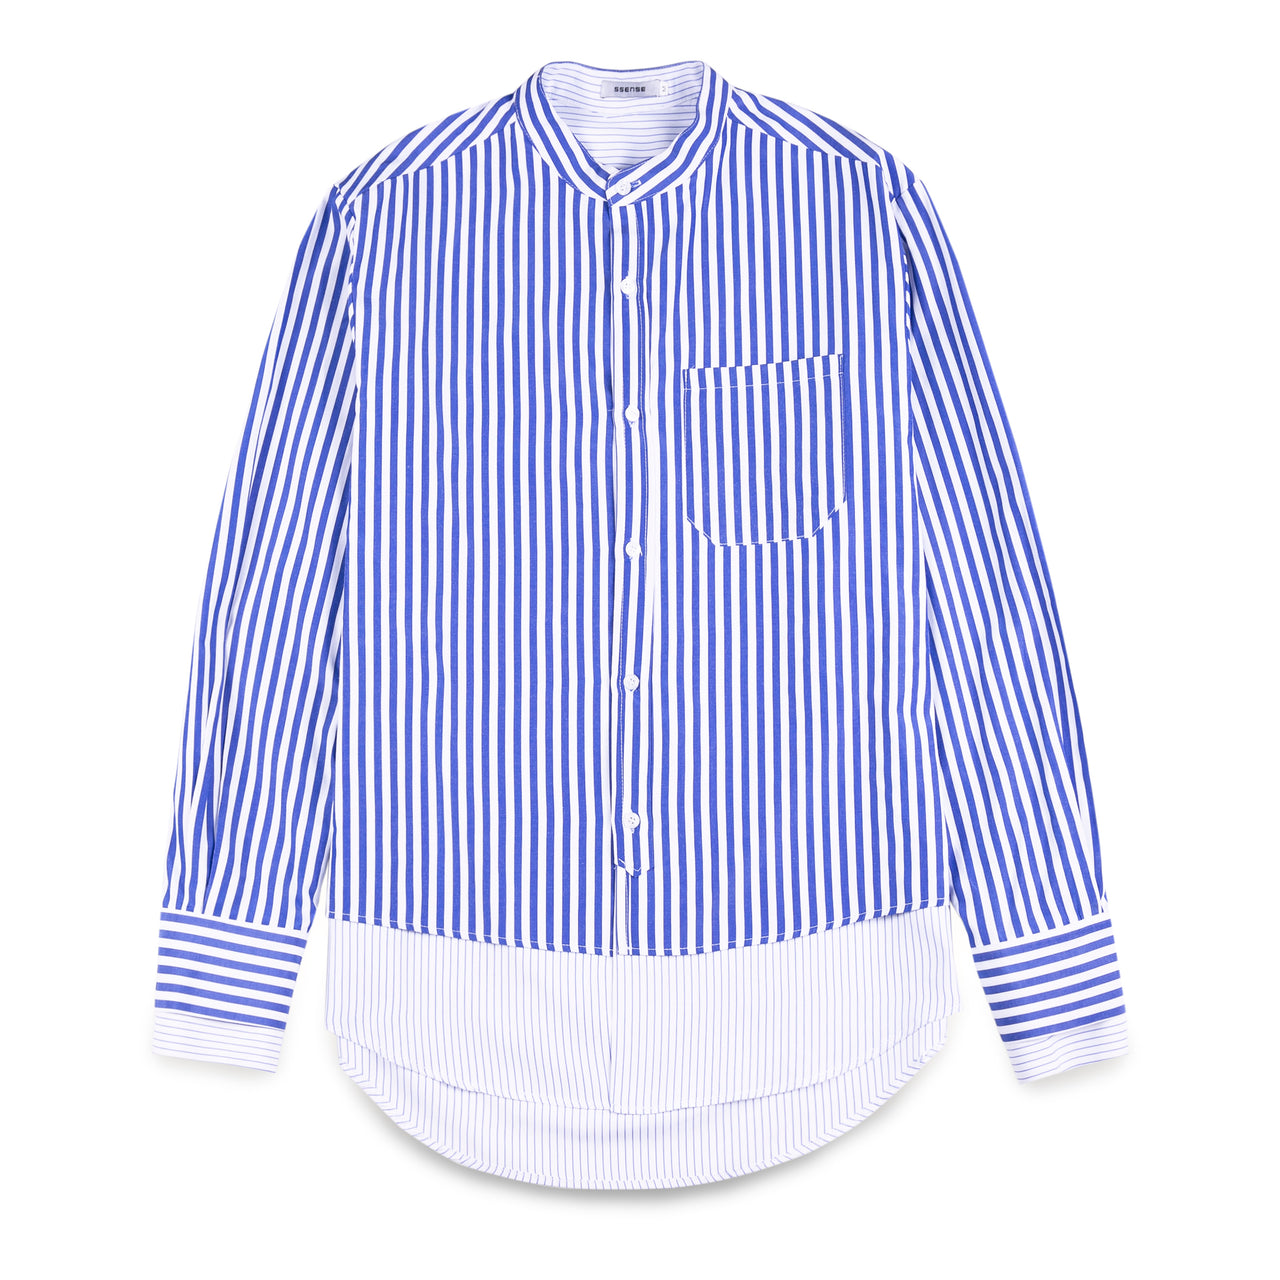 Ssense Layer Striped Shirt